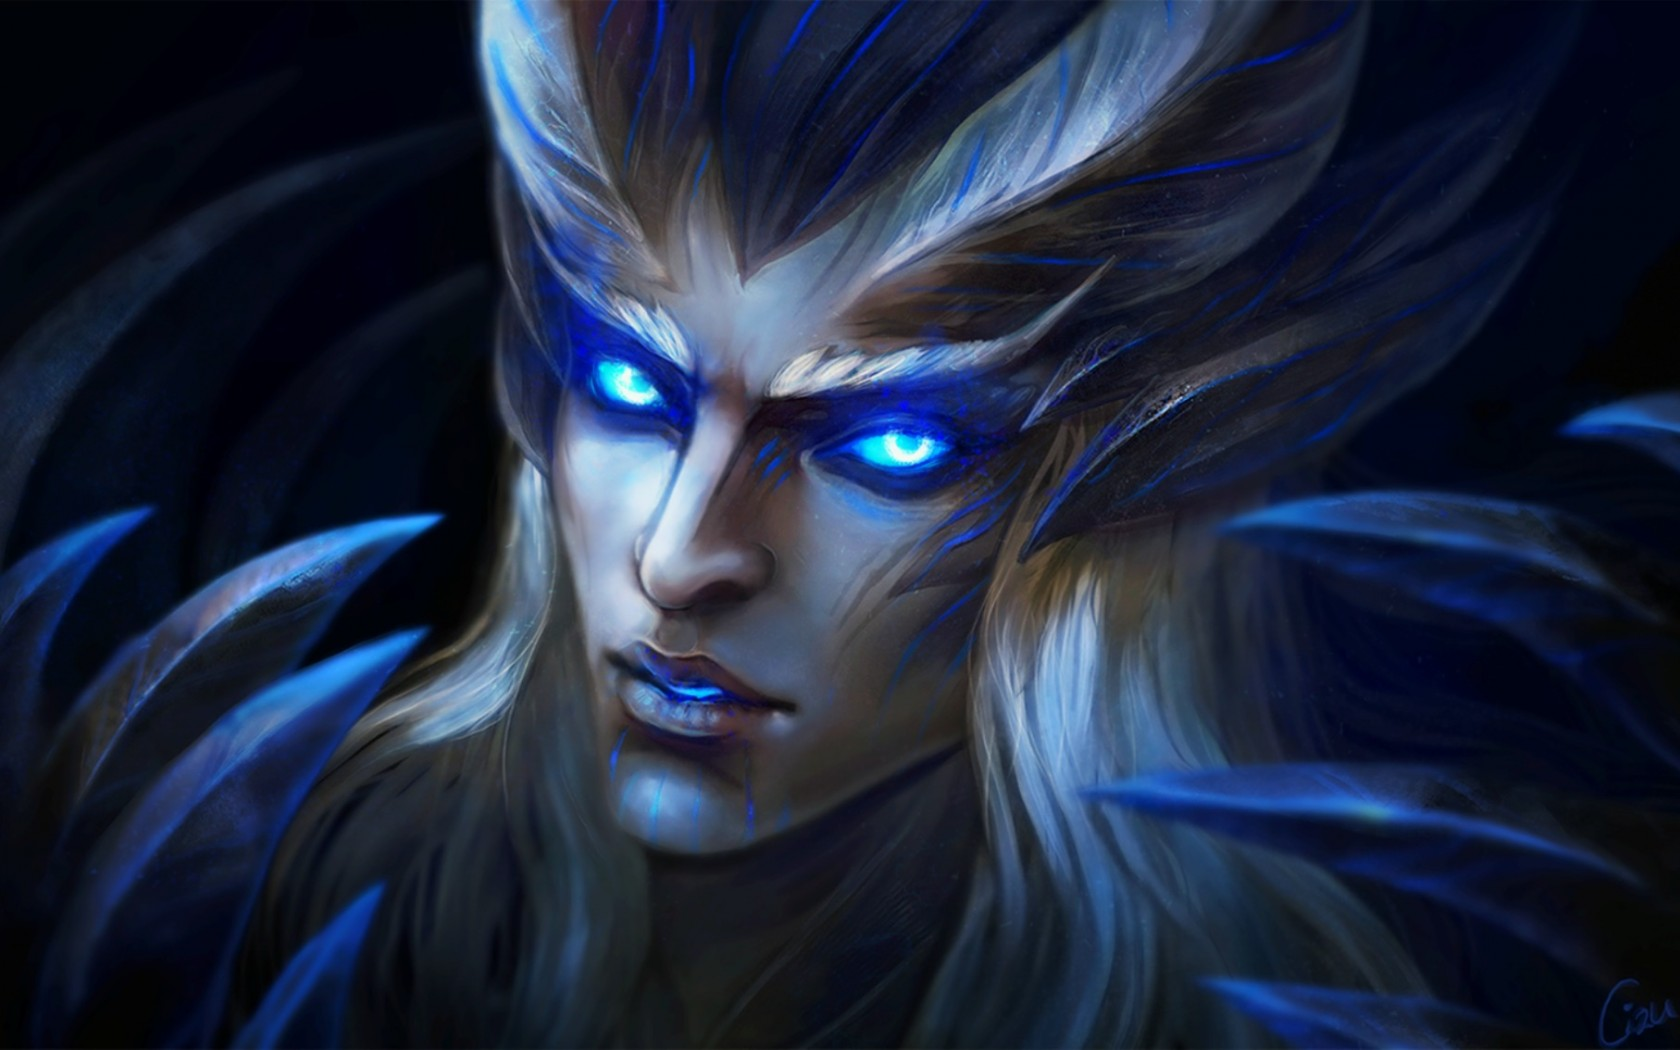 Skywrath Mage computer wallpaper free